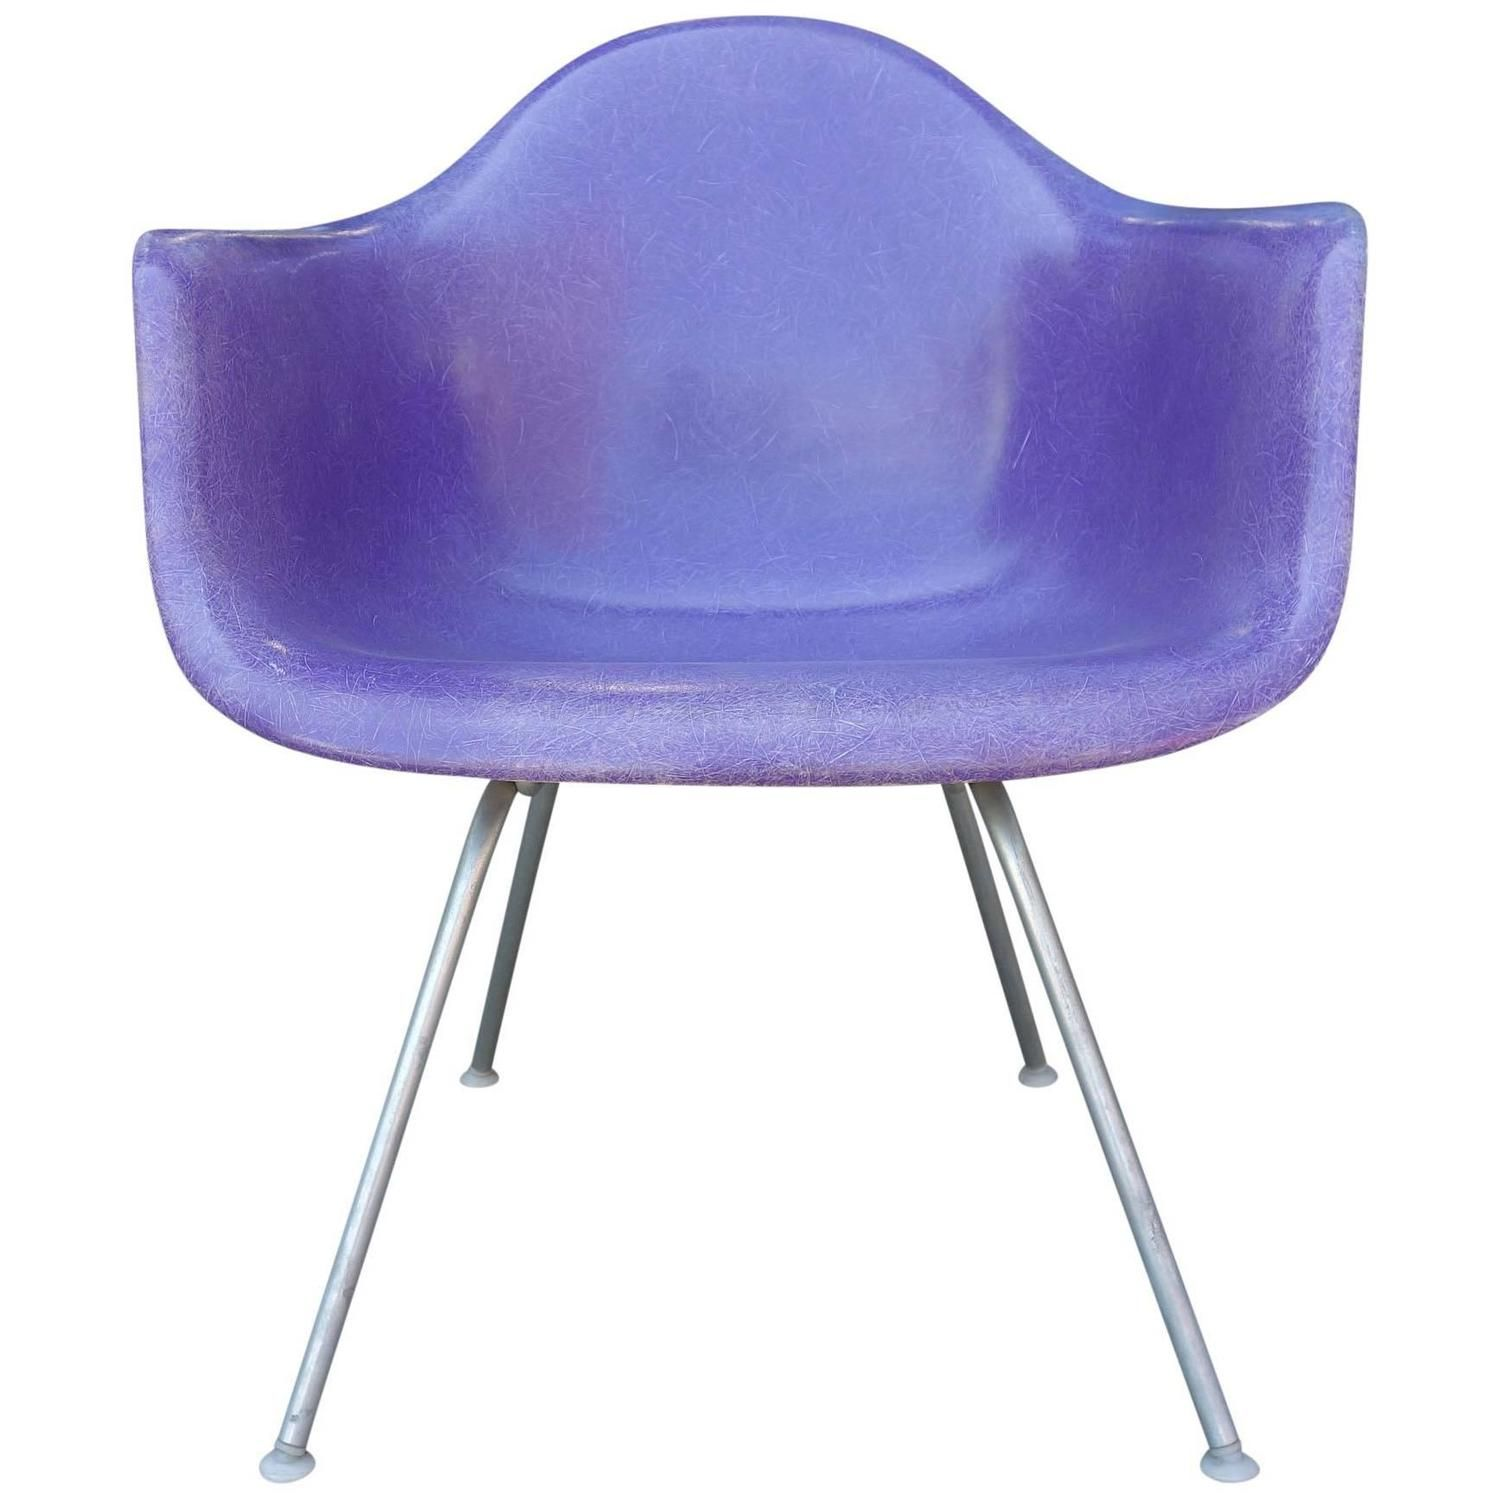 MidCentury Eames LAX Lounge Armchair in Rarest Purple